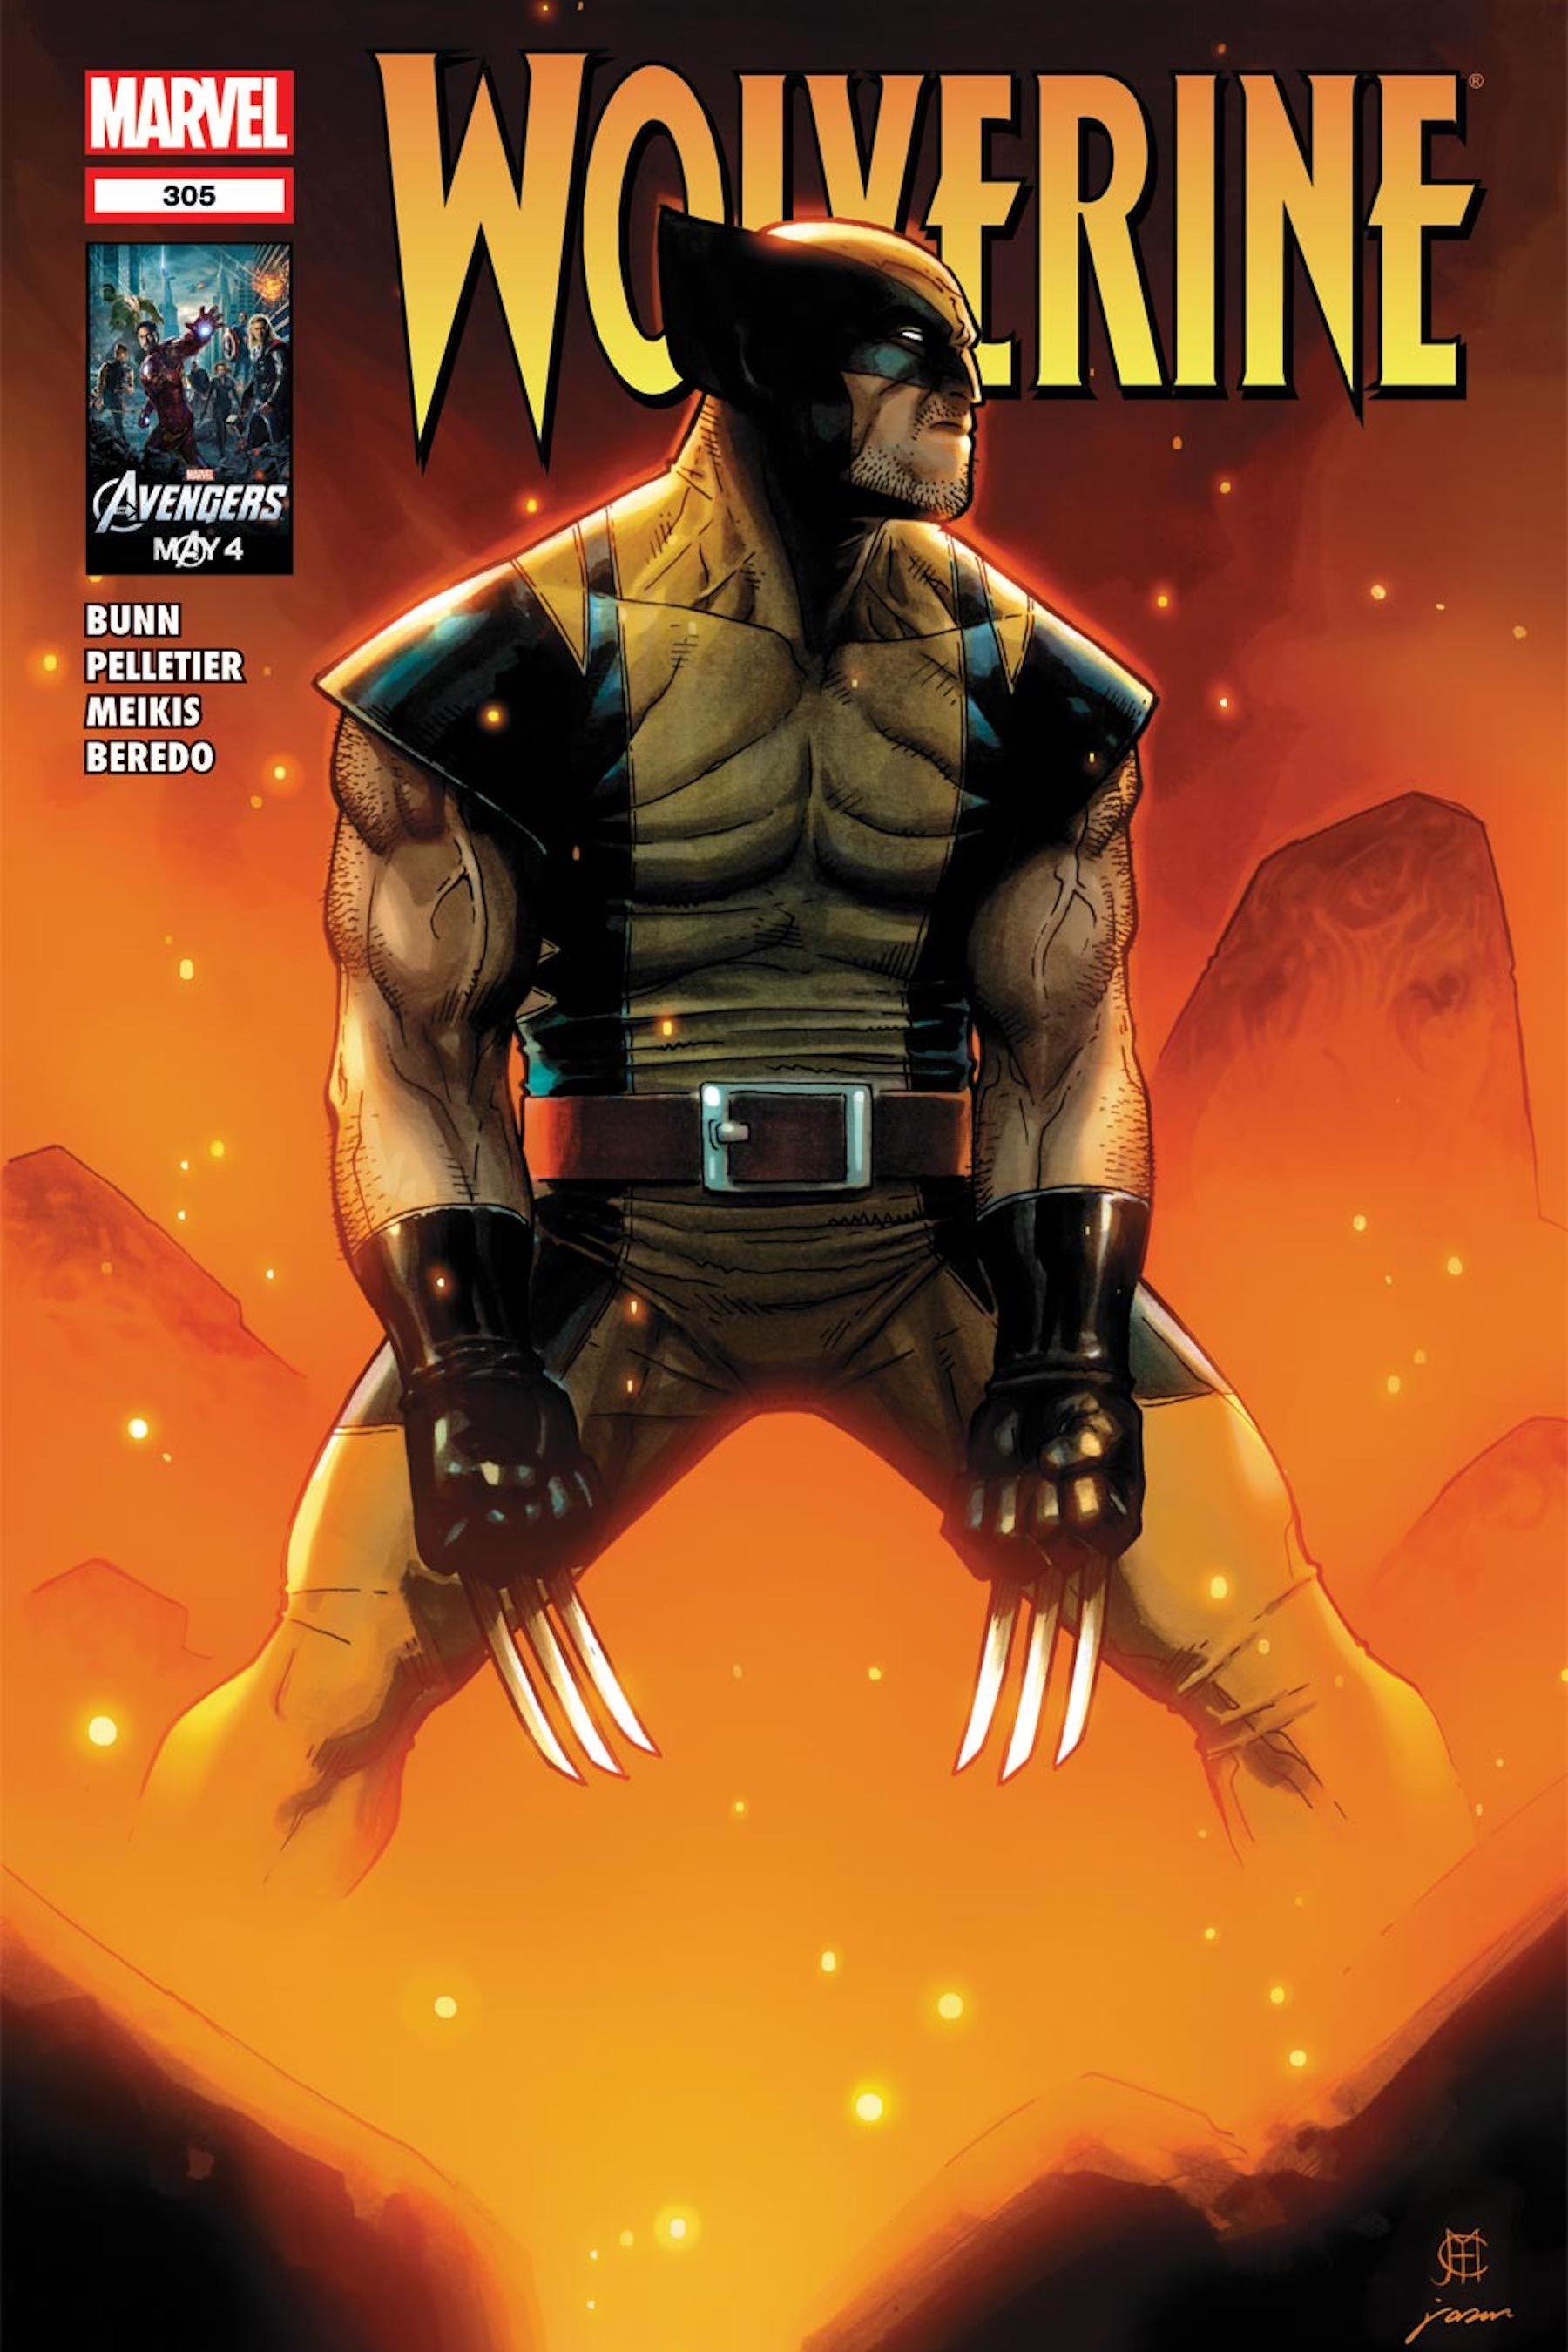 Azeez Ojulari by Sean Chen and Darren Sanchez, after WOLVERINE #305 by Jason Keith & Jim Cheung